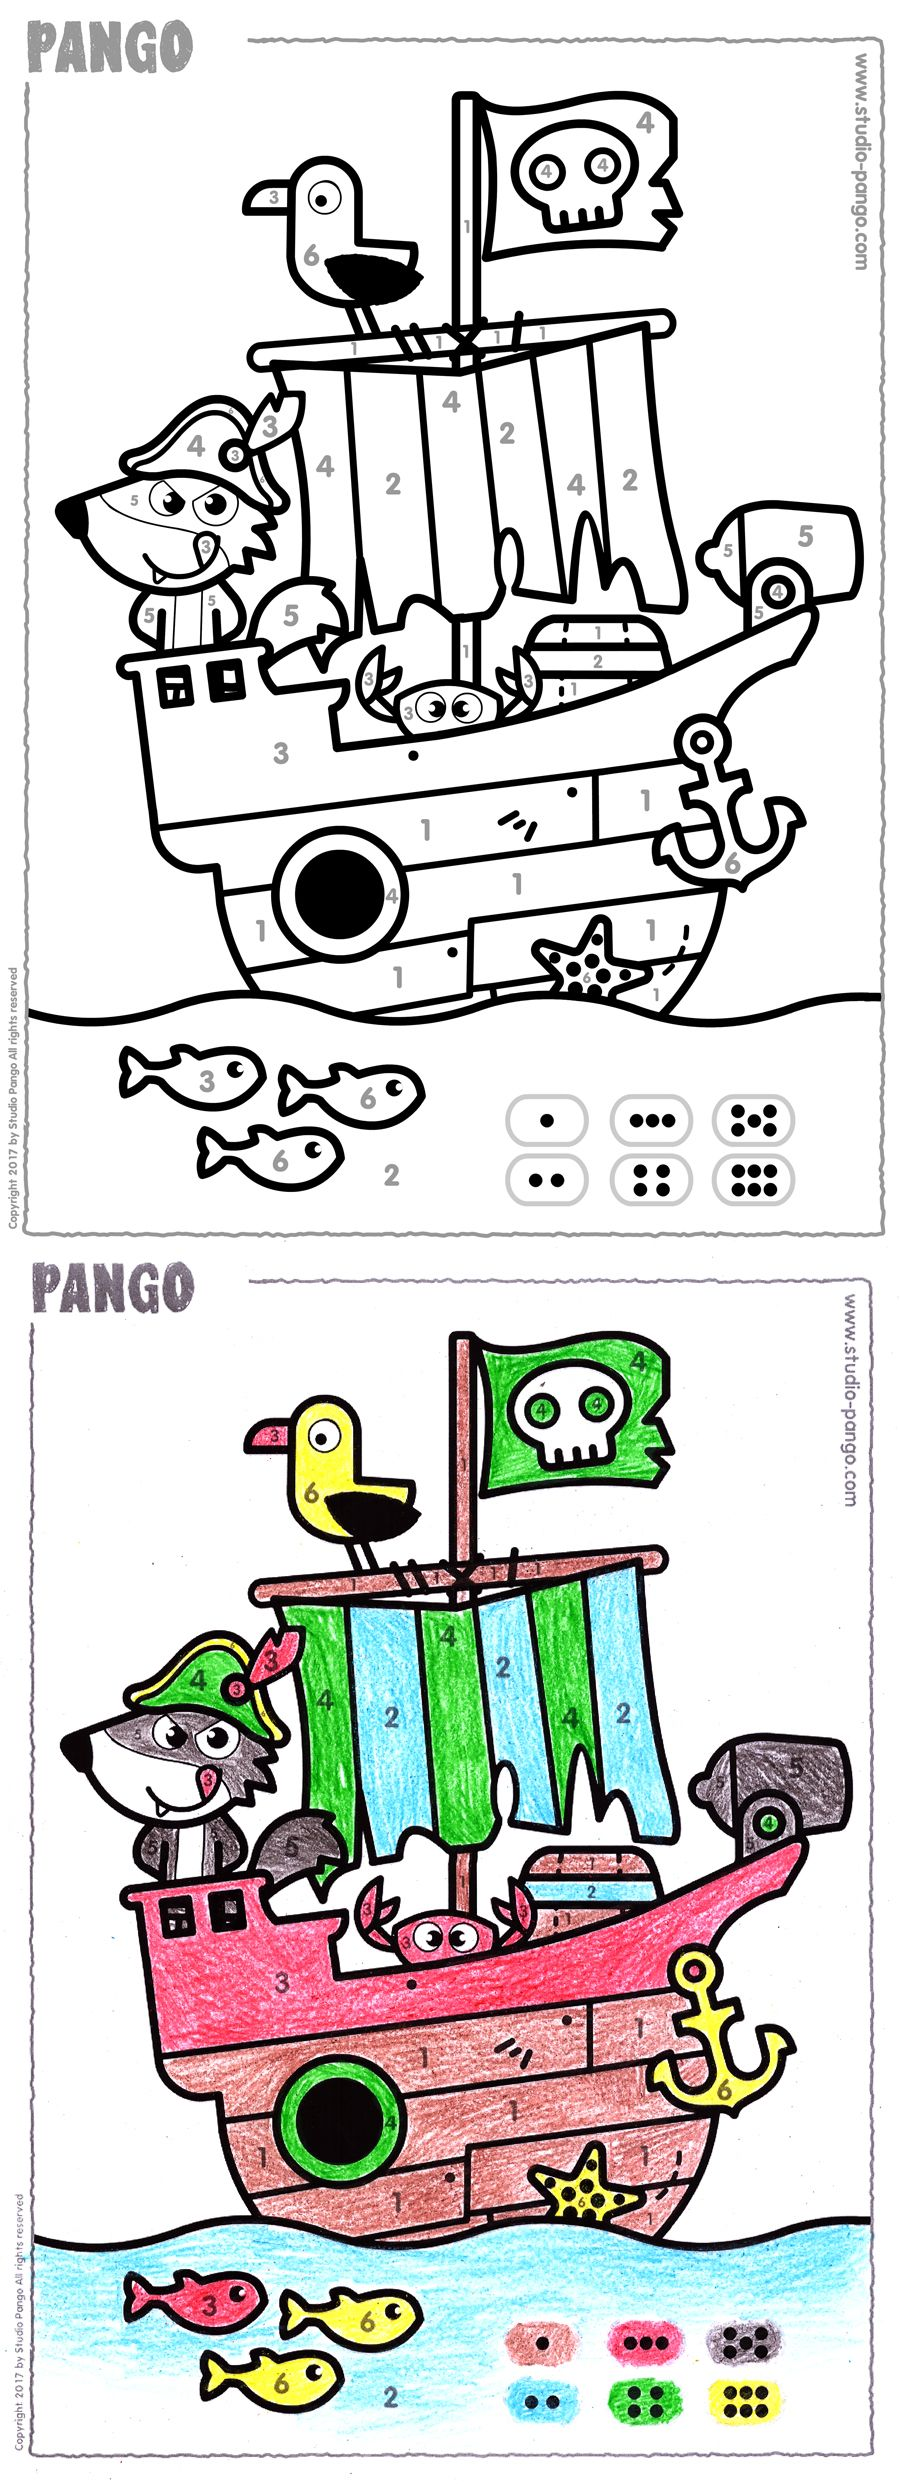 Pirate Ship Color By Numbers Coloring Coloriage Code Numbers 6 Numbers Preschool Printable Activities For Kids Pirate Theme [ 2484 x 900 Pixel ]